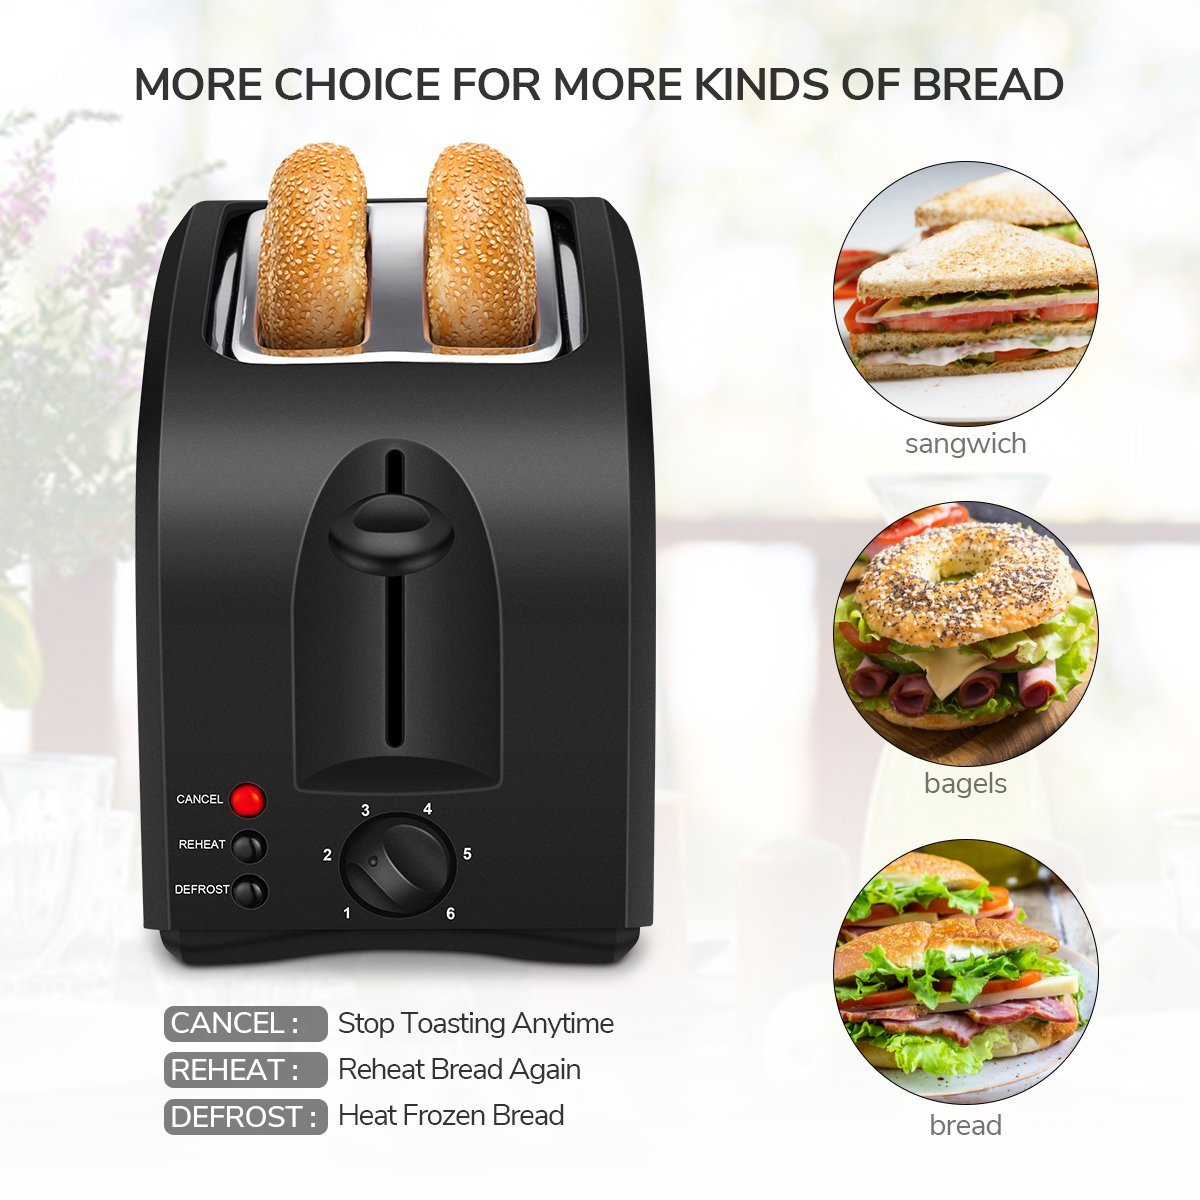 2 Slice Toaster, HOME GIZMO Cool Touch Toaster 2-Slice Wide Slot, Compact Toasters with Defrost/Reheat/Cancel Function Extra Removable Crumb Tray- Stainless Steel